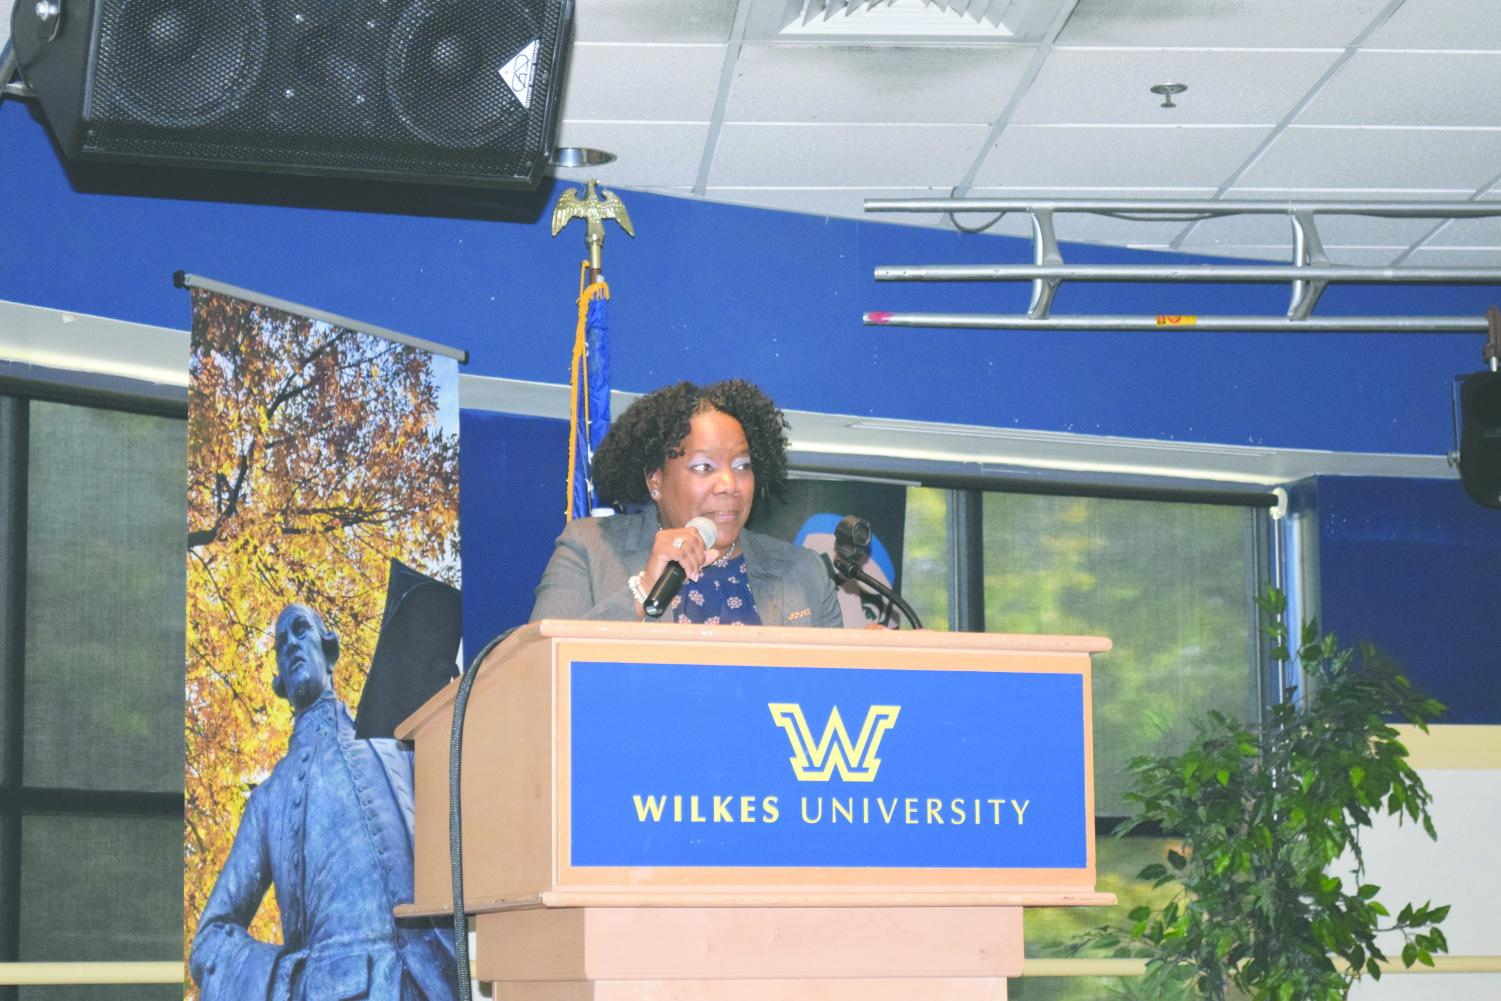 Dr. Vicki Sapp, the keynote speaker, spoke about how she overcame her own unconscious bias.